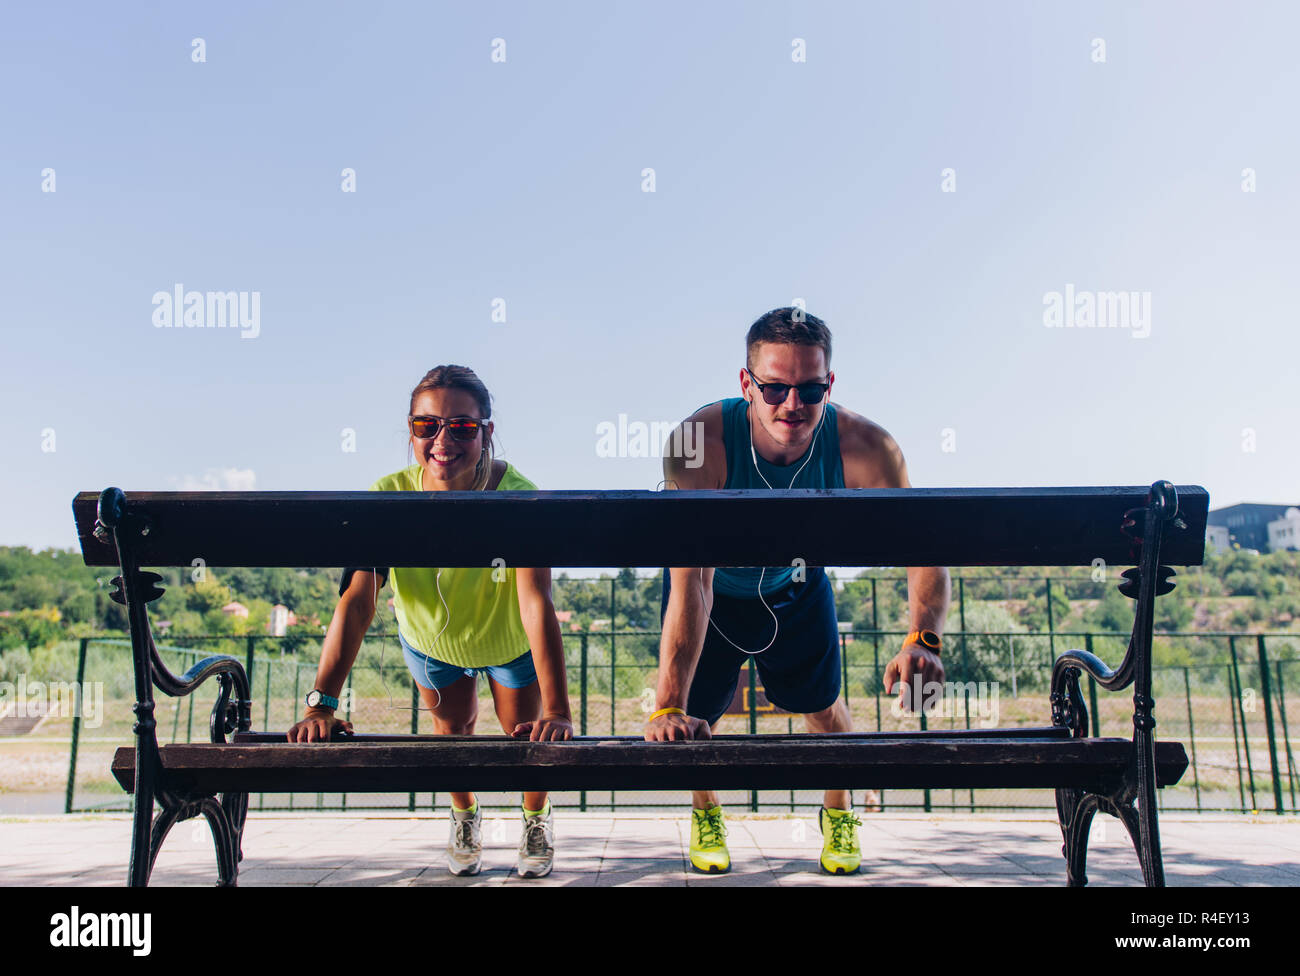 Two runners stretching and warming up in park before training - Stock Image